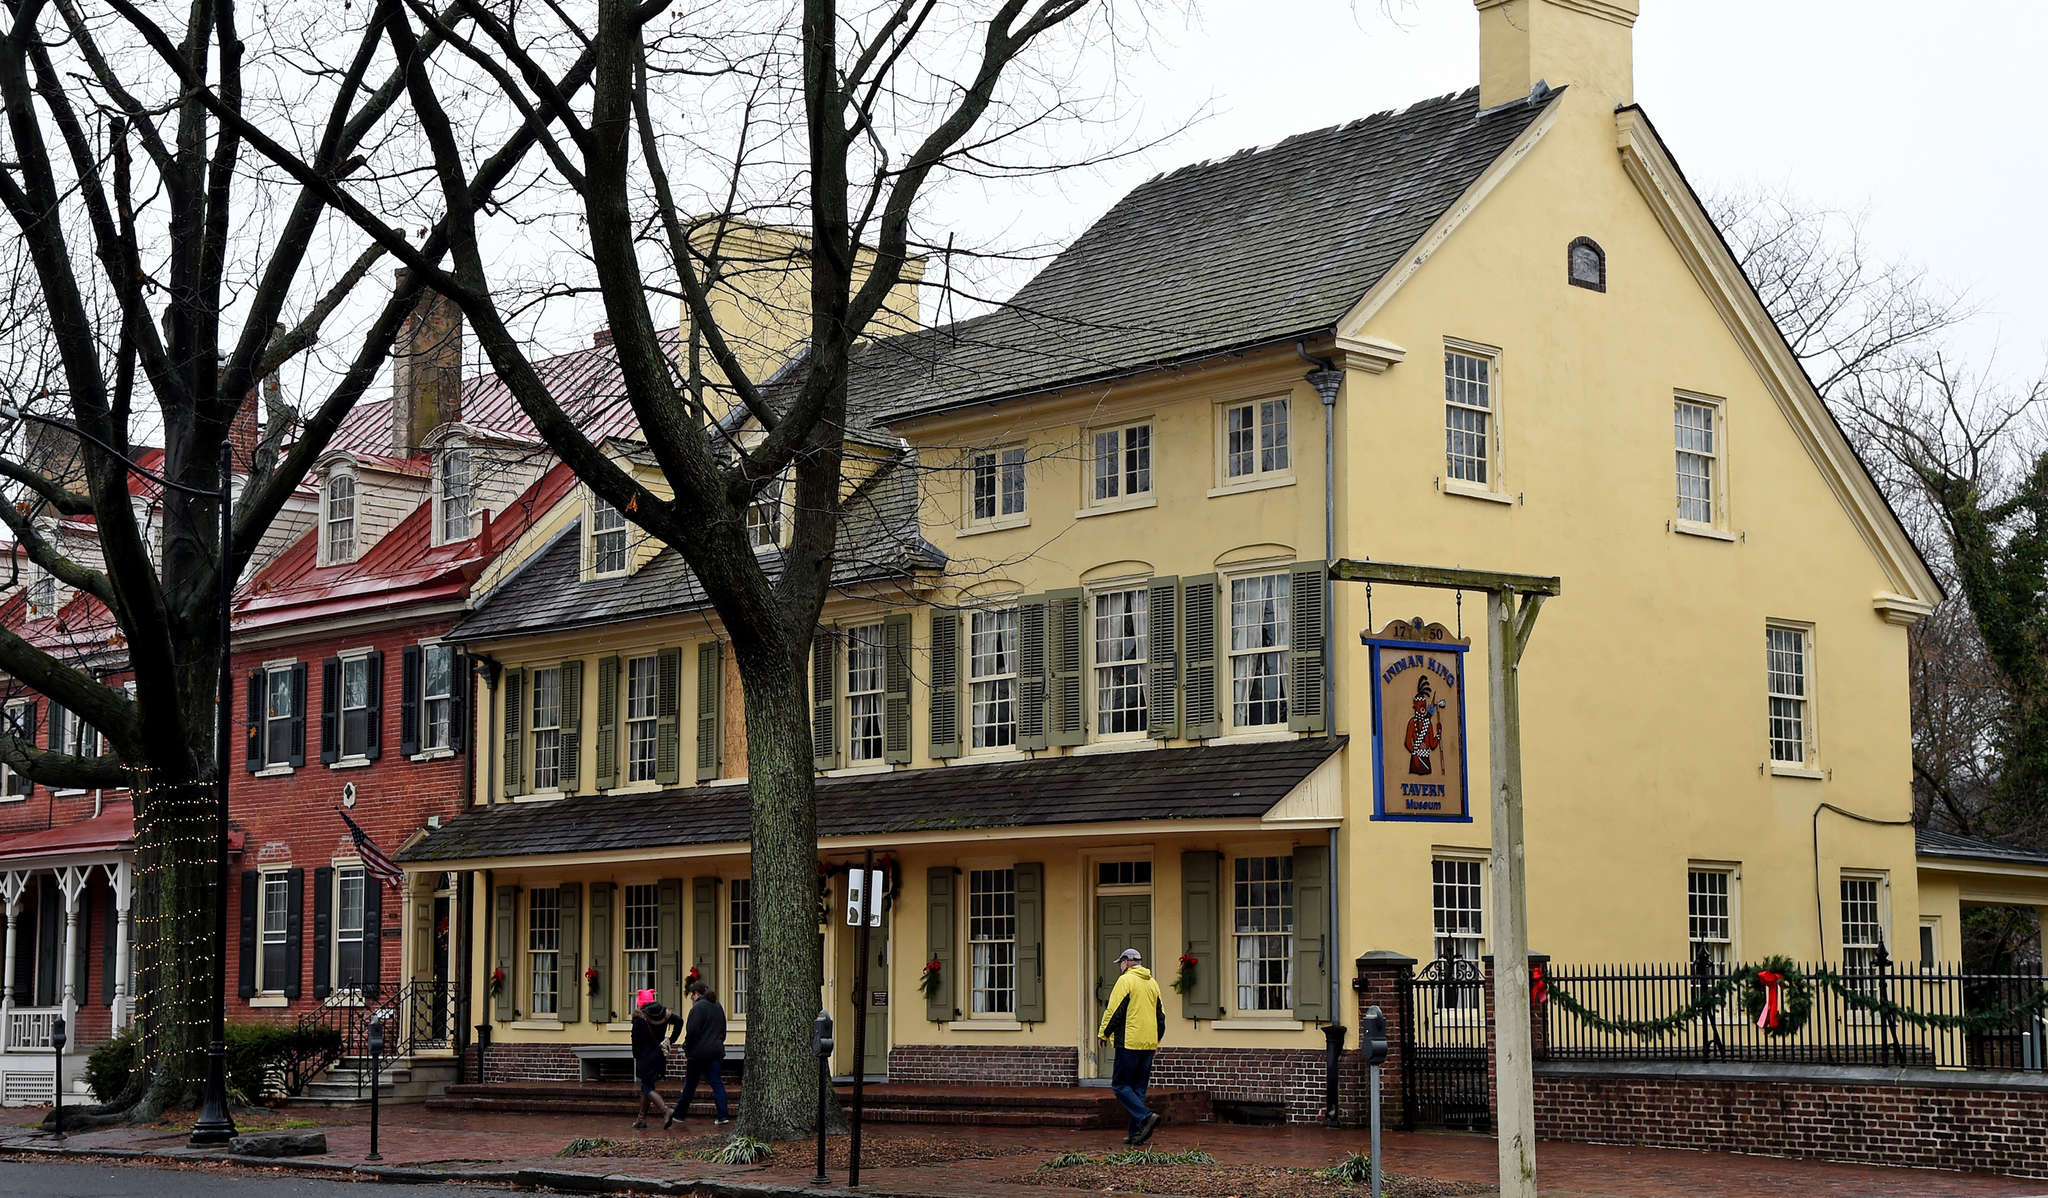 The Indian King Tavern along Kings Highway in downtown Haddonfield was built in 1750.